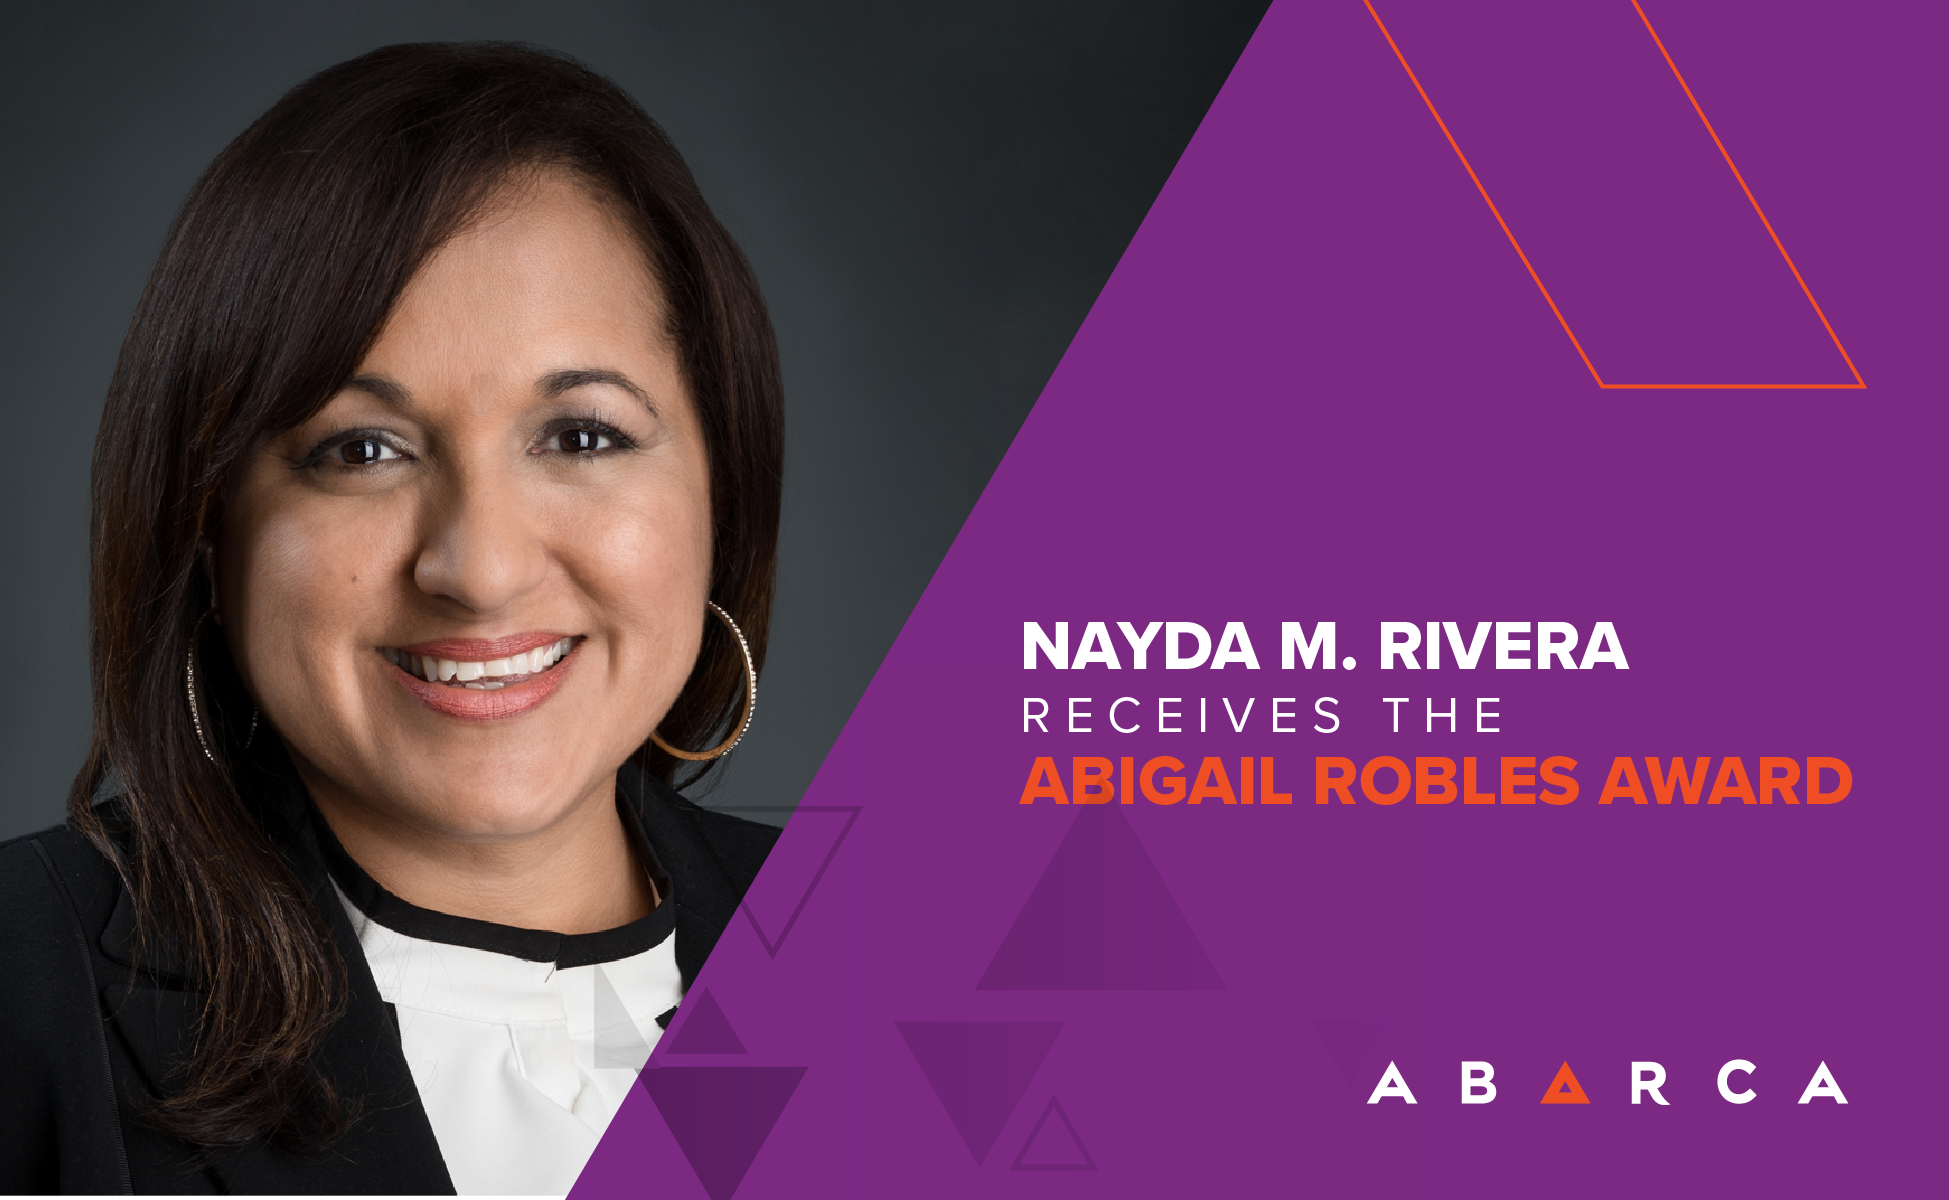 Abarcan Nayda M. Rivera receives the Abigail Robles Award